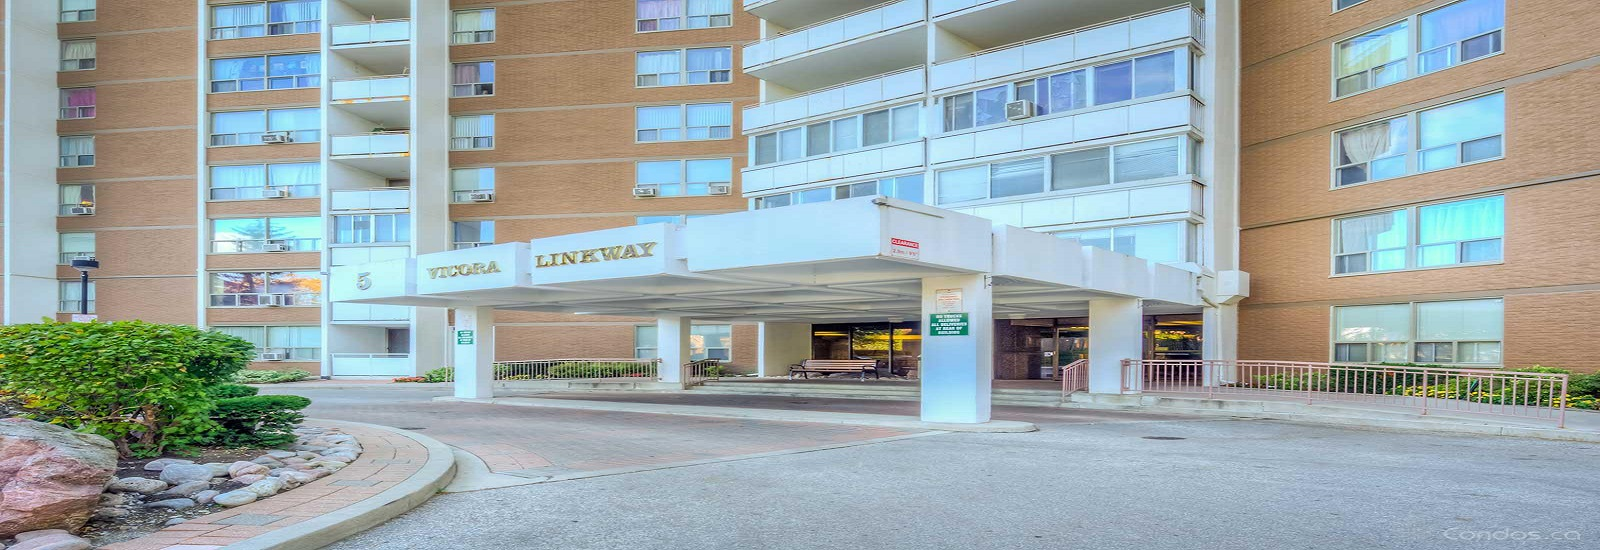 5 Vicora Linkway Condos For Sale